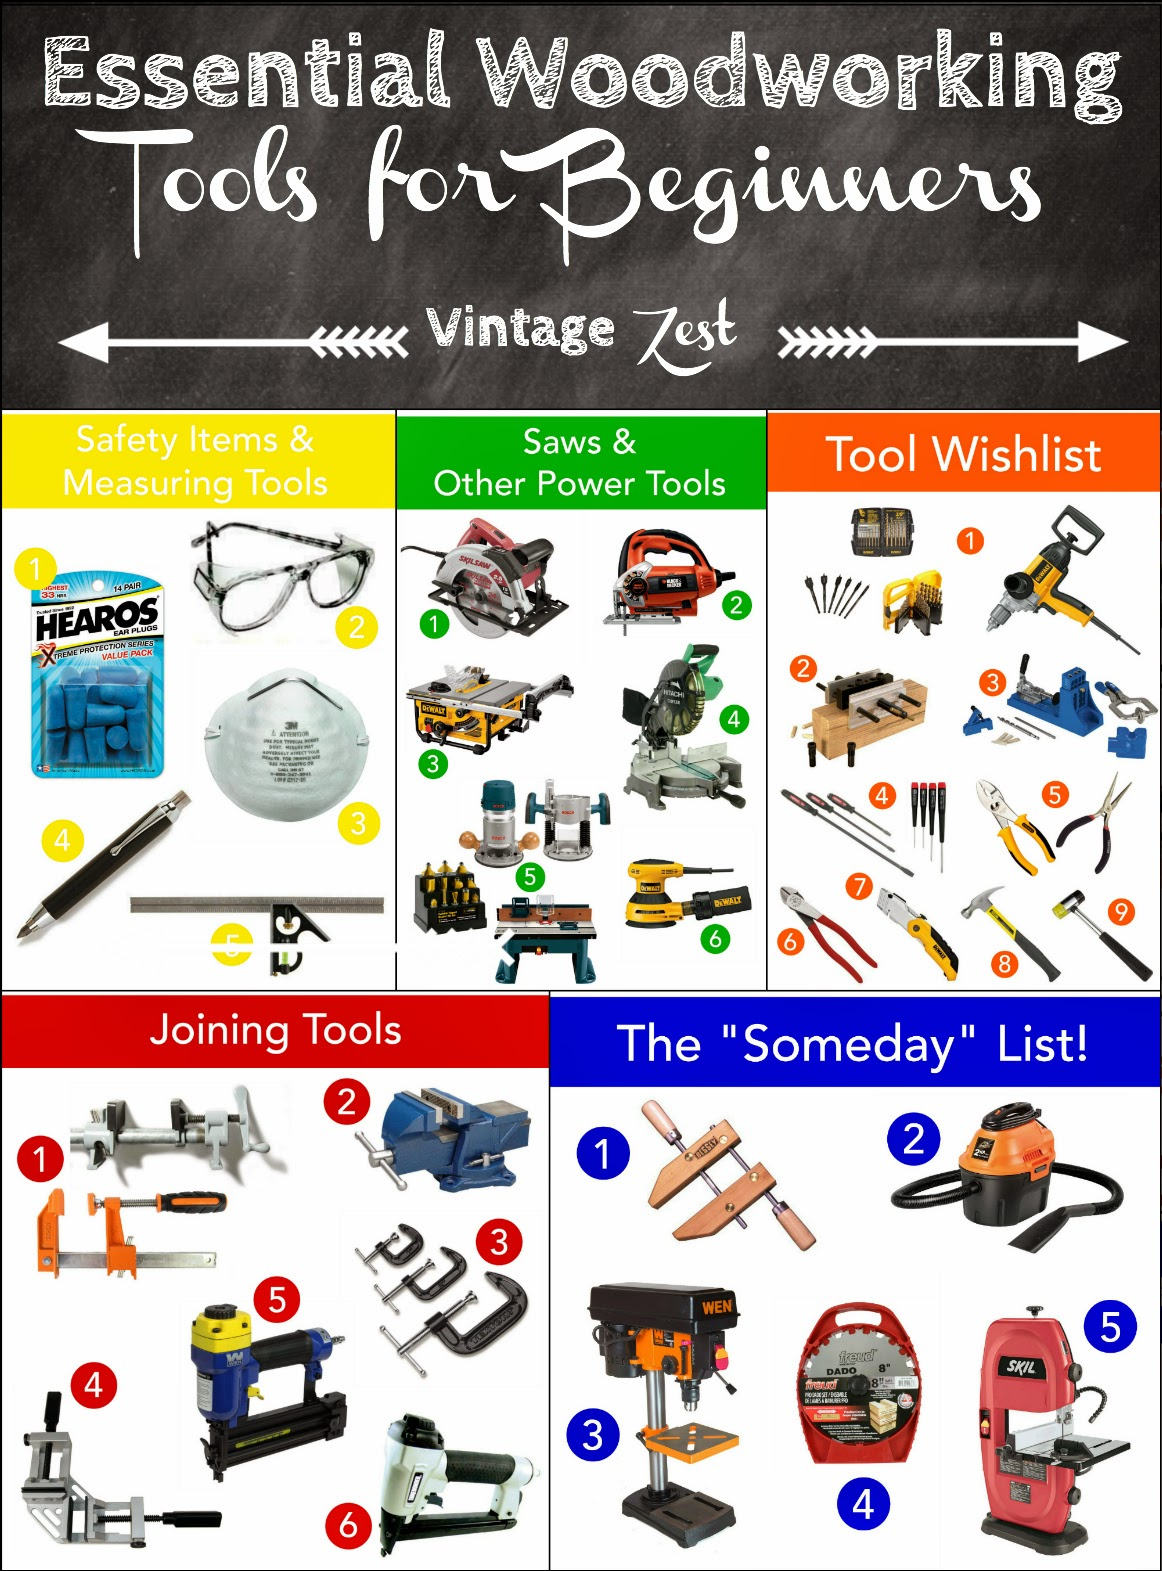 Essential Woodworking Tools for Beginners: A wishlist ...